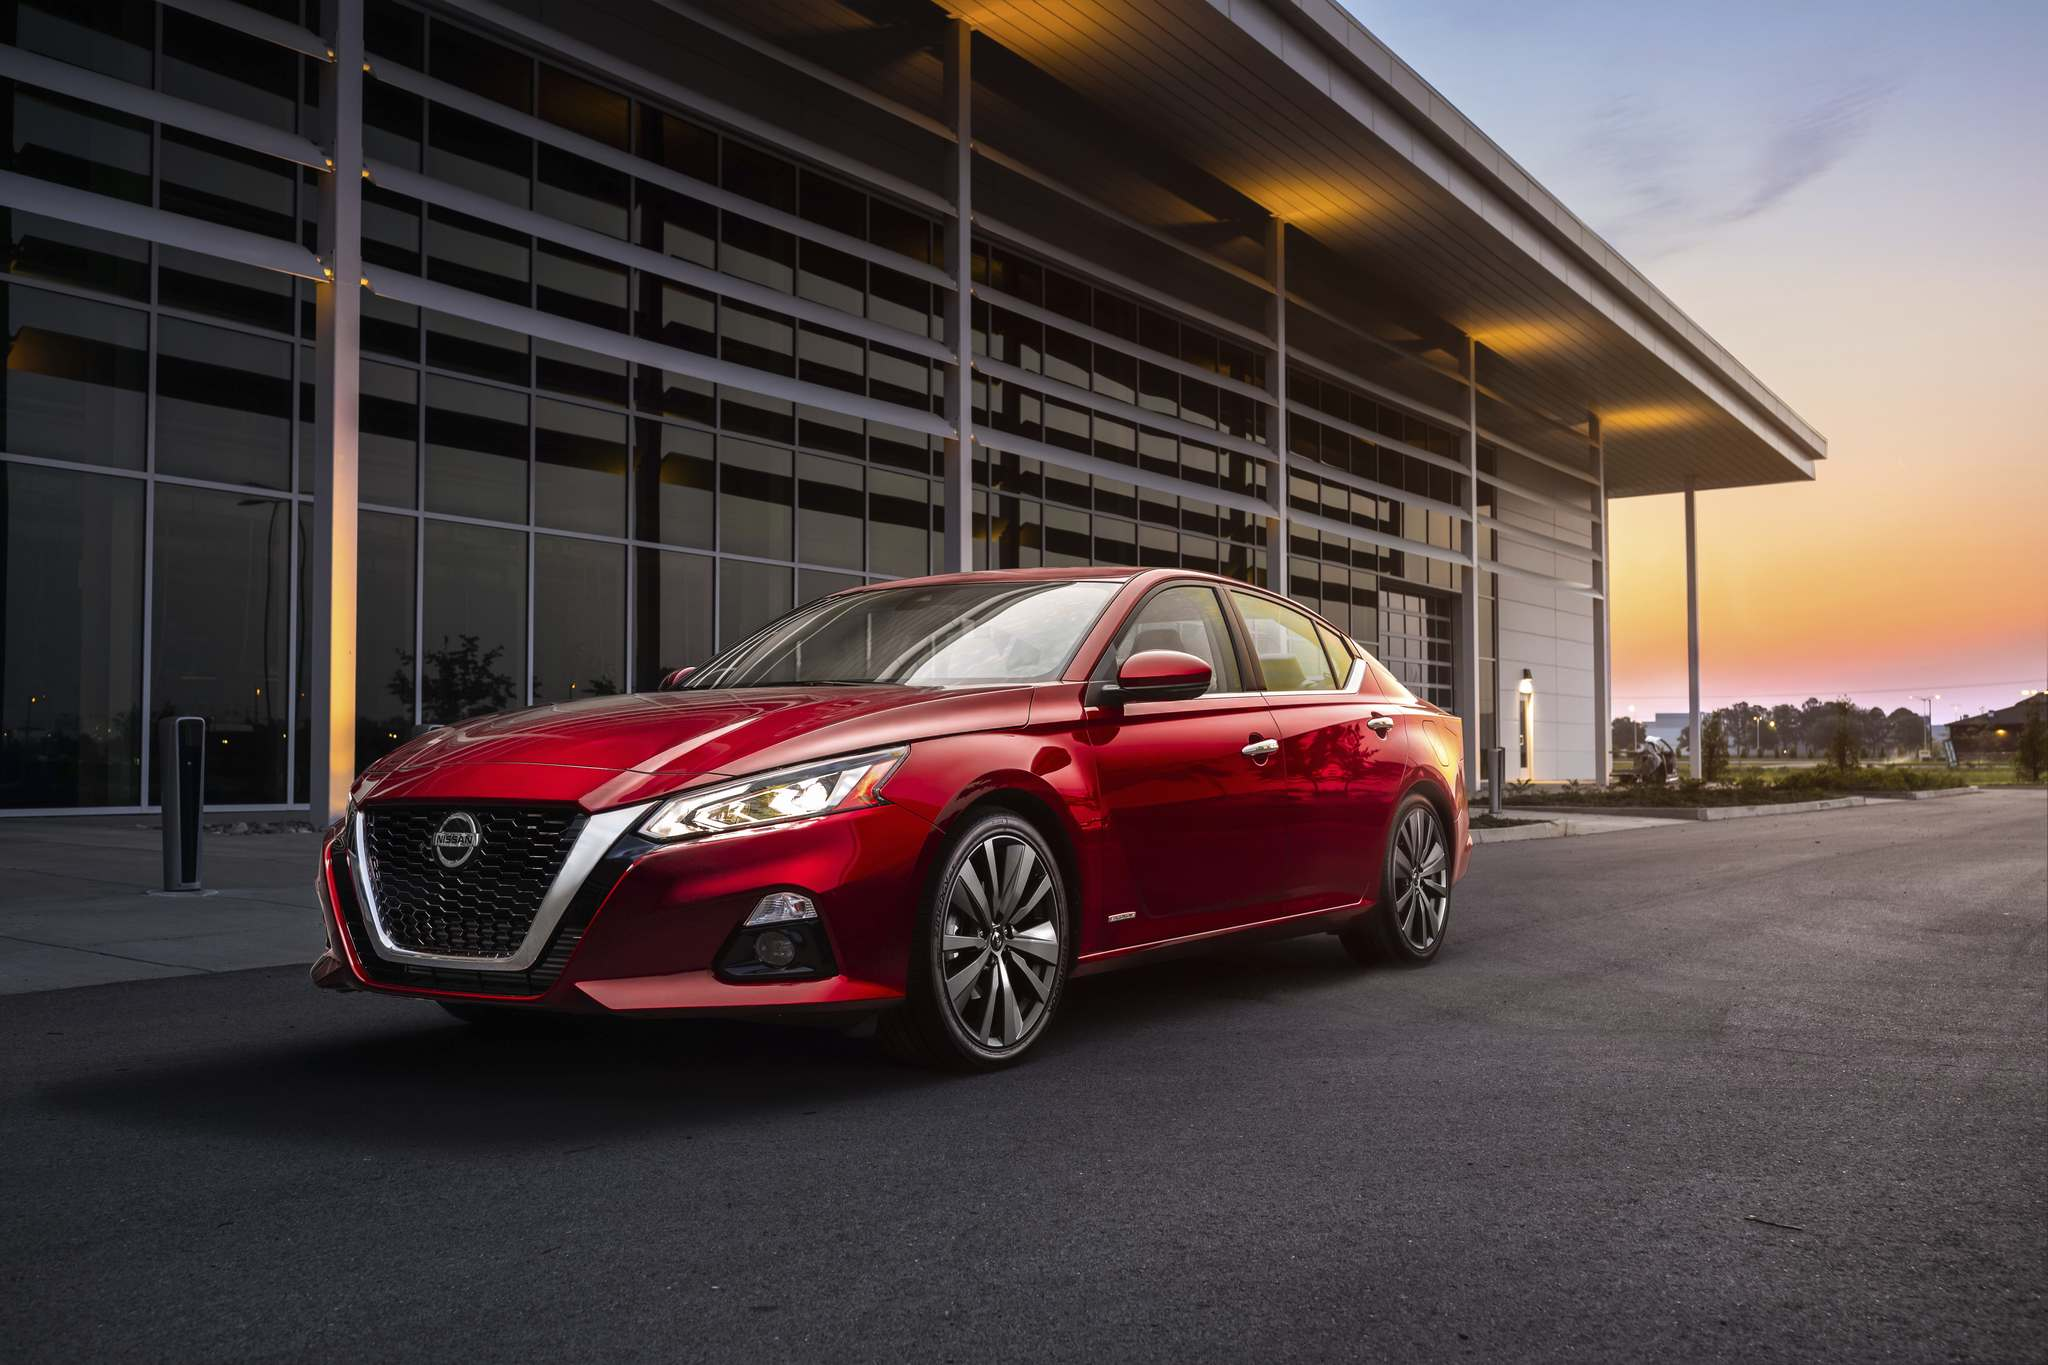 photos by NissanNissan says the 2019 Altima represents the company's biggest investment in a vehicle platform ever. For the 2019 Altima, all-wheel drive is now standard.